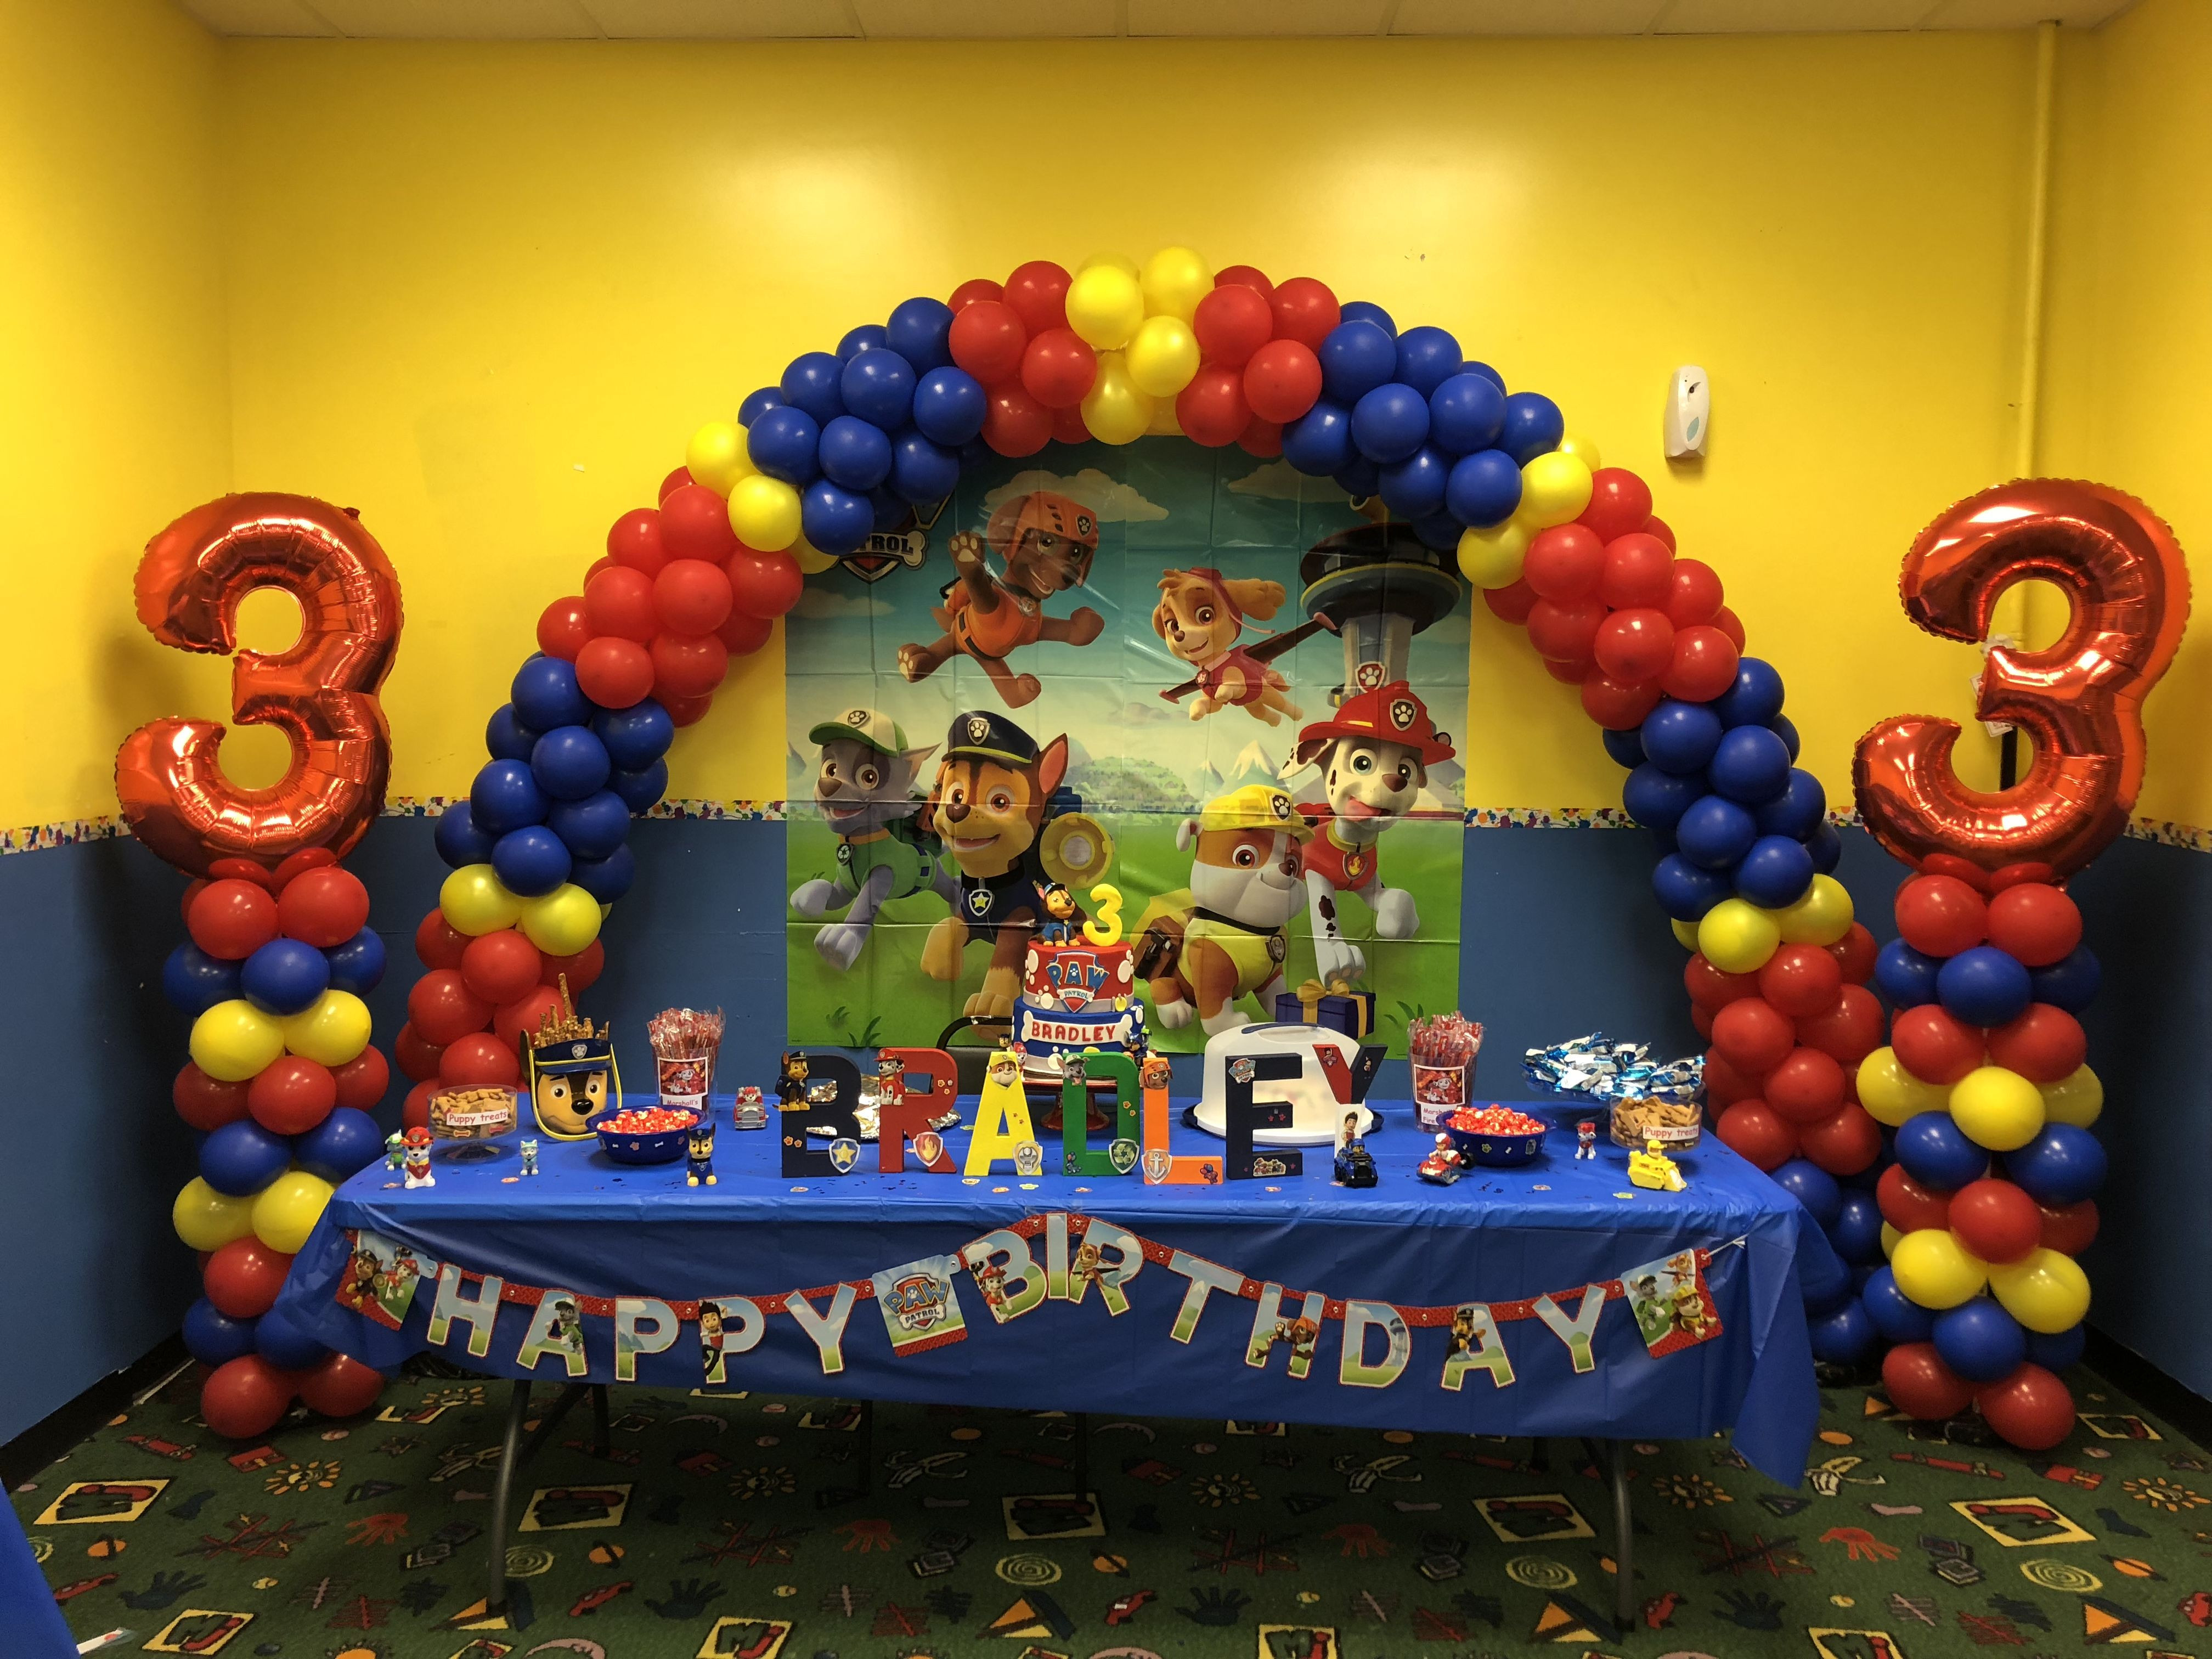 Best ideas about Paw Patrol Birthday Decor . Save or Pin Paw Patrol party decor ideas Party Ideas in 2019 Now.